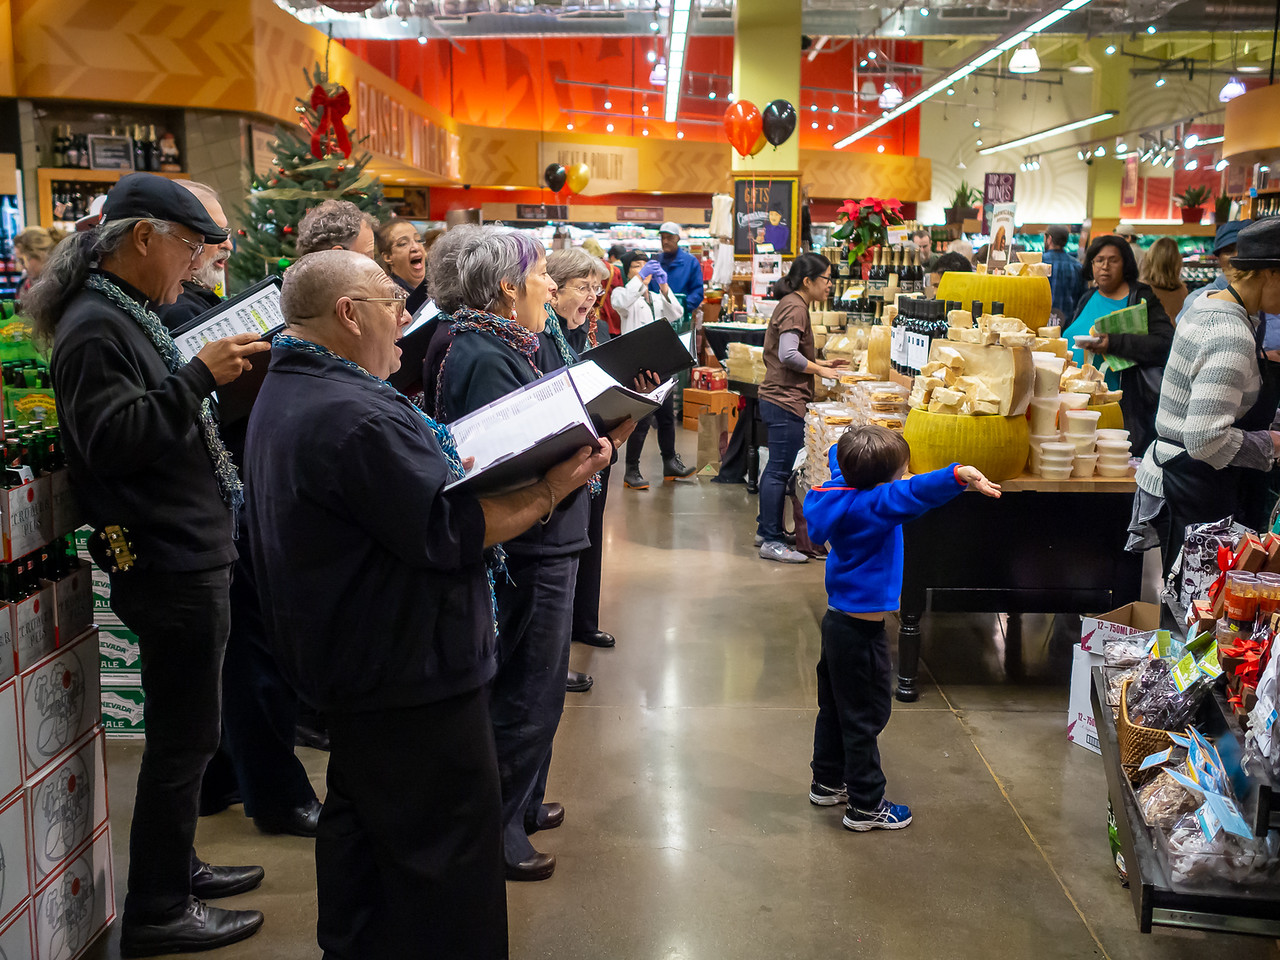 Whole Foods, December 13.  The very last piece of the day featured a guest conductor.